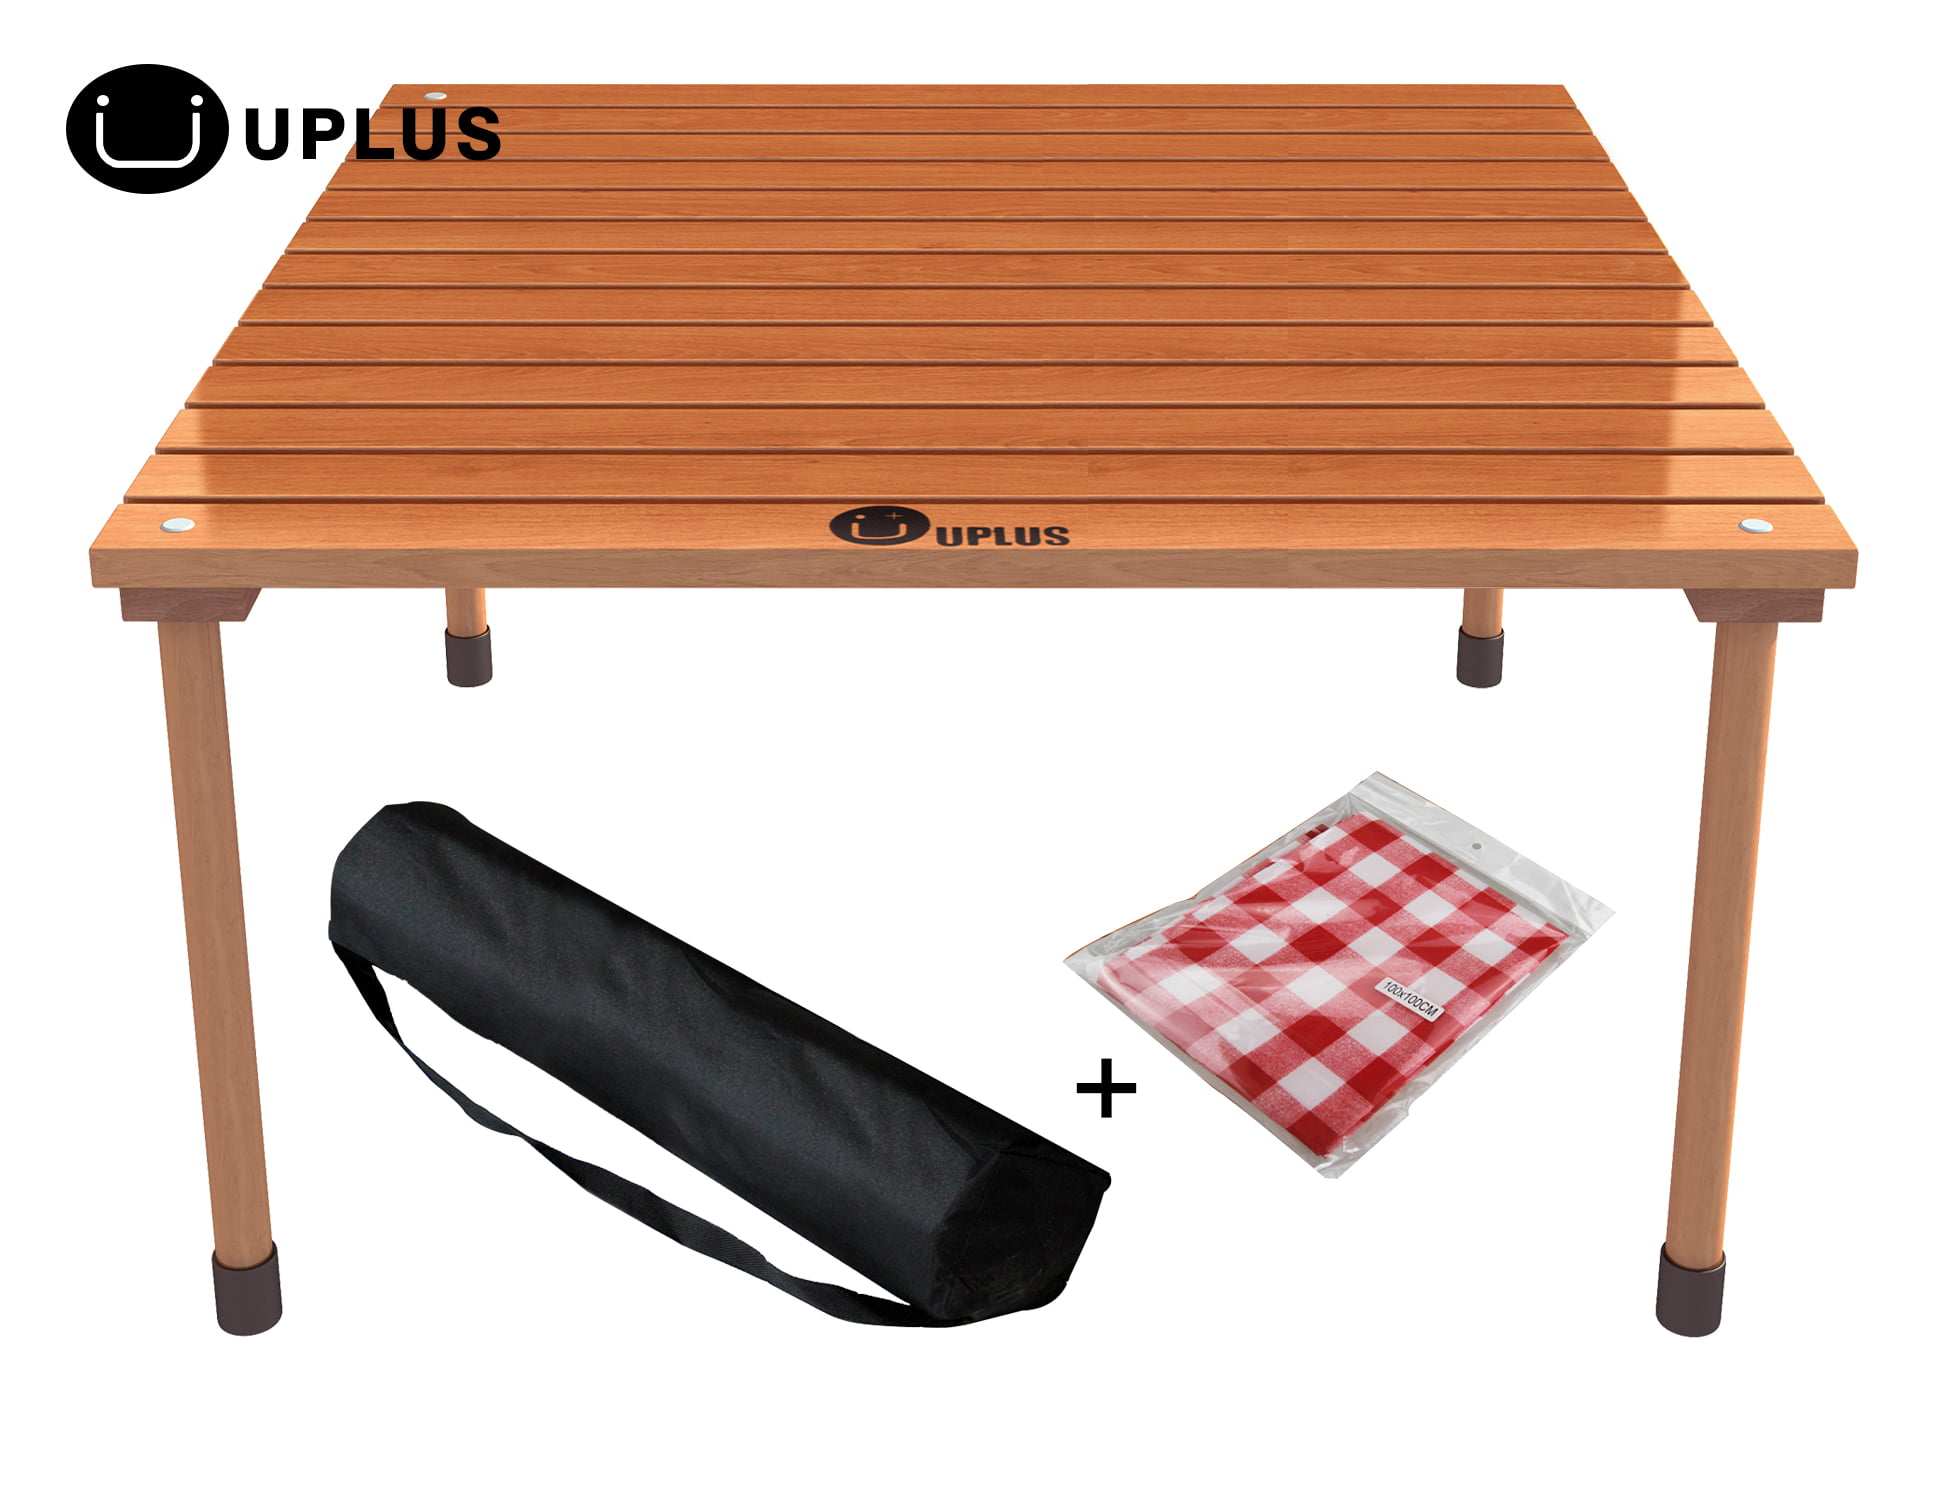 Etonnant Small Folding Table    UPLUS Outdoor Portable Folding Picnic Beach Teak  Wood Card Table With Free Table Cloth And Carrying Bag    Outdoor Portable  ...